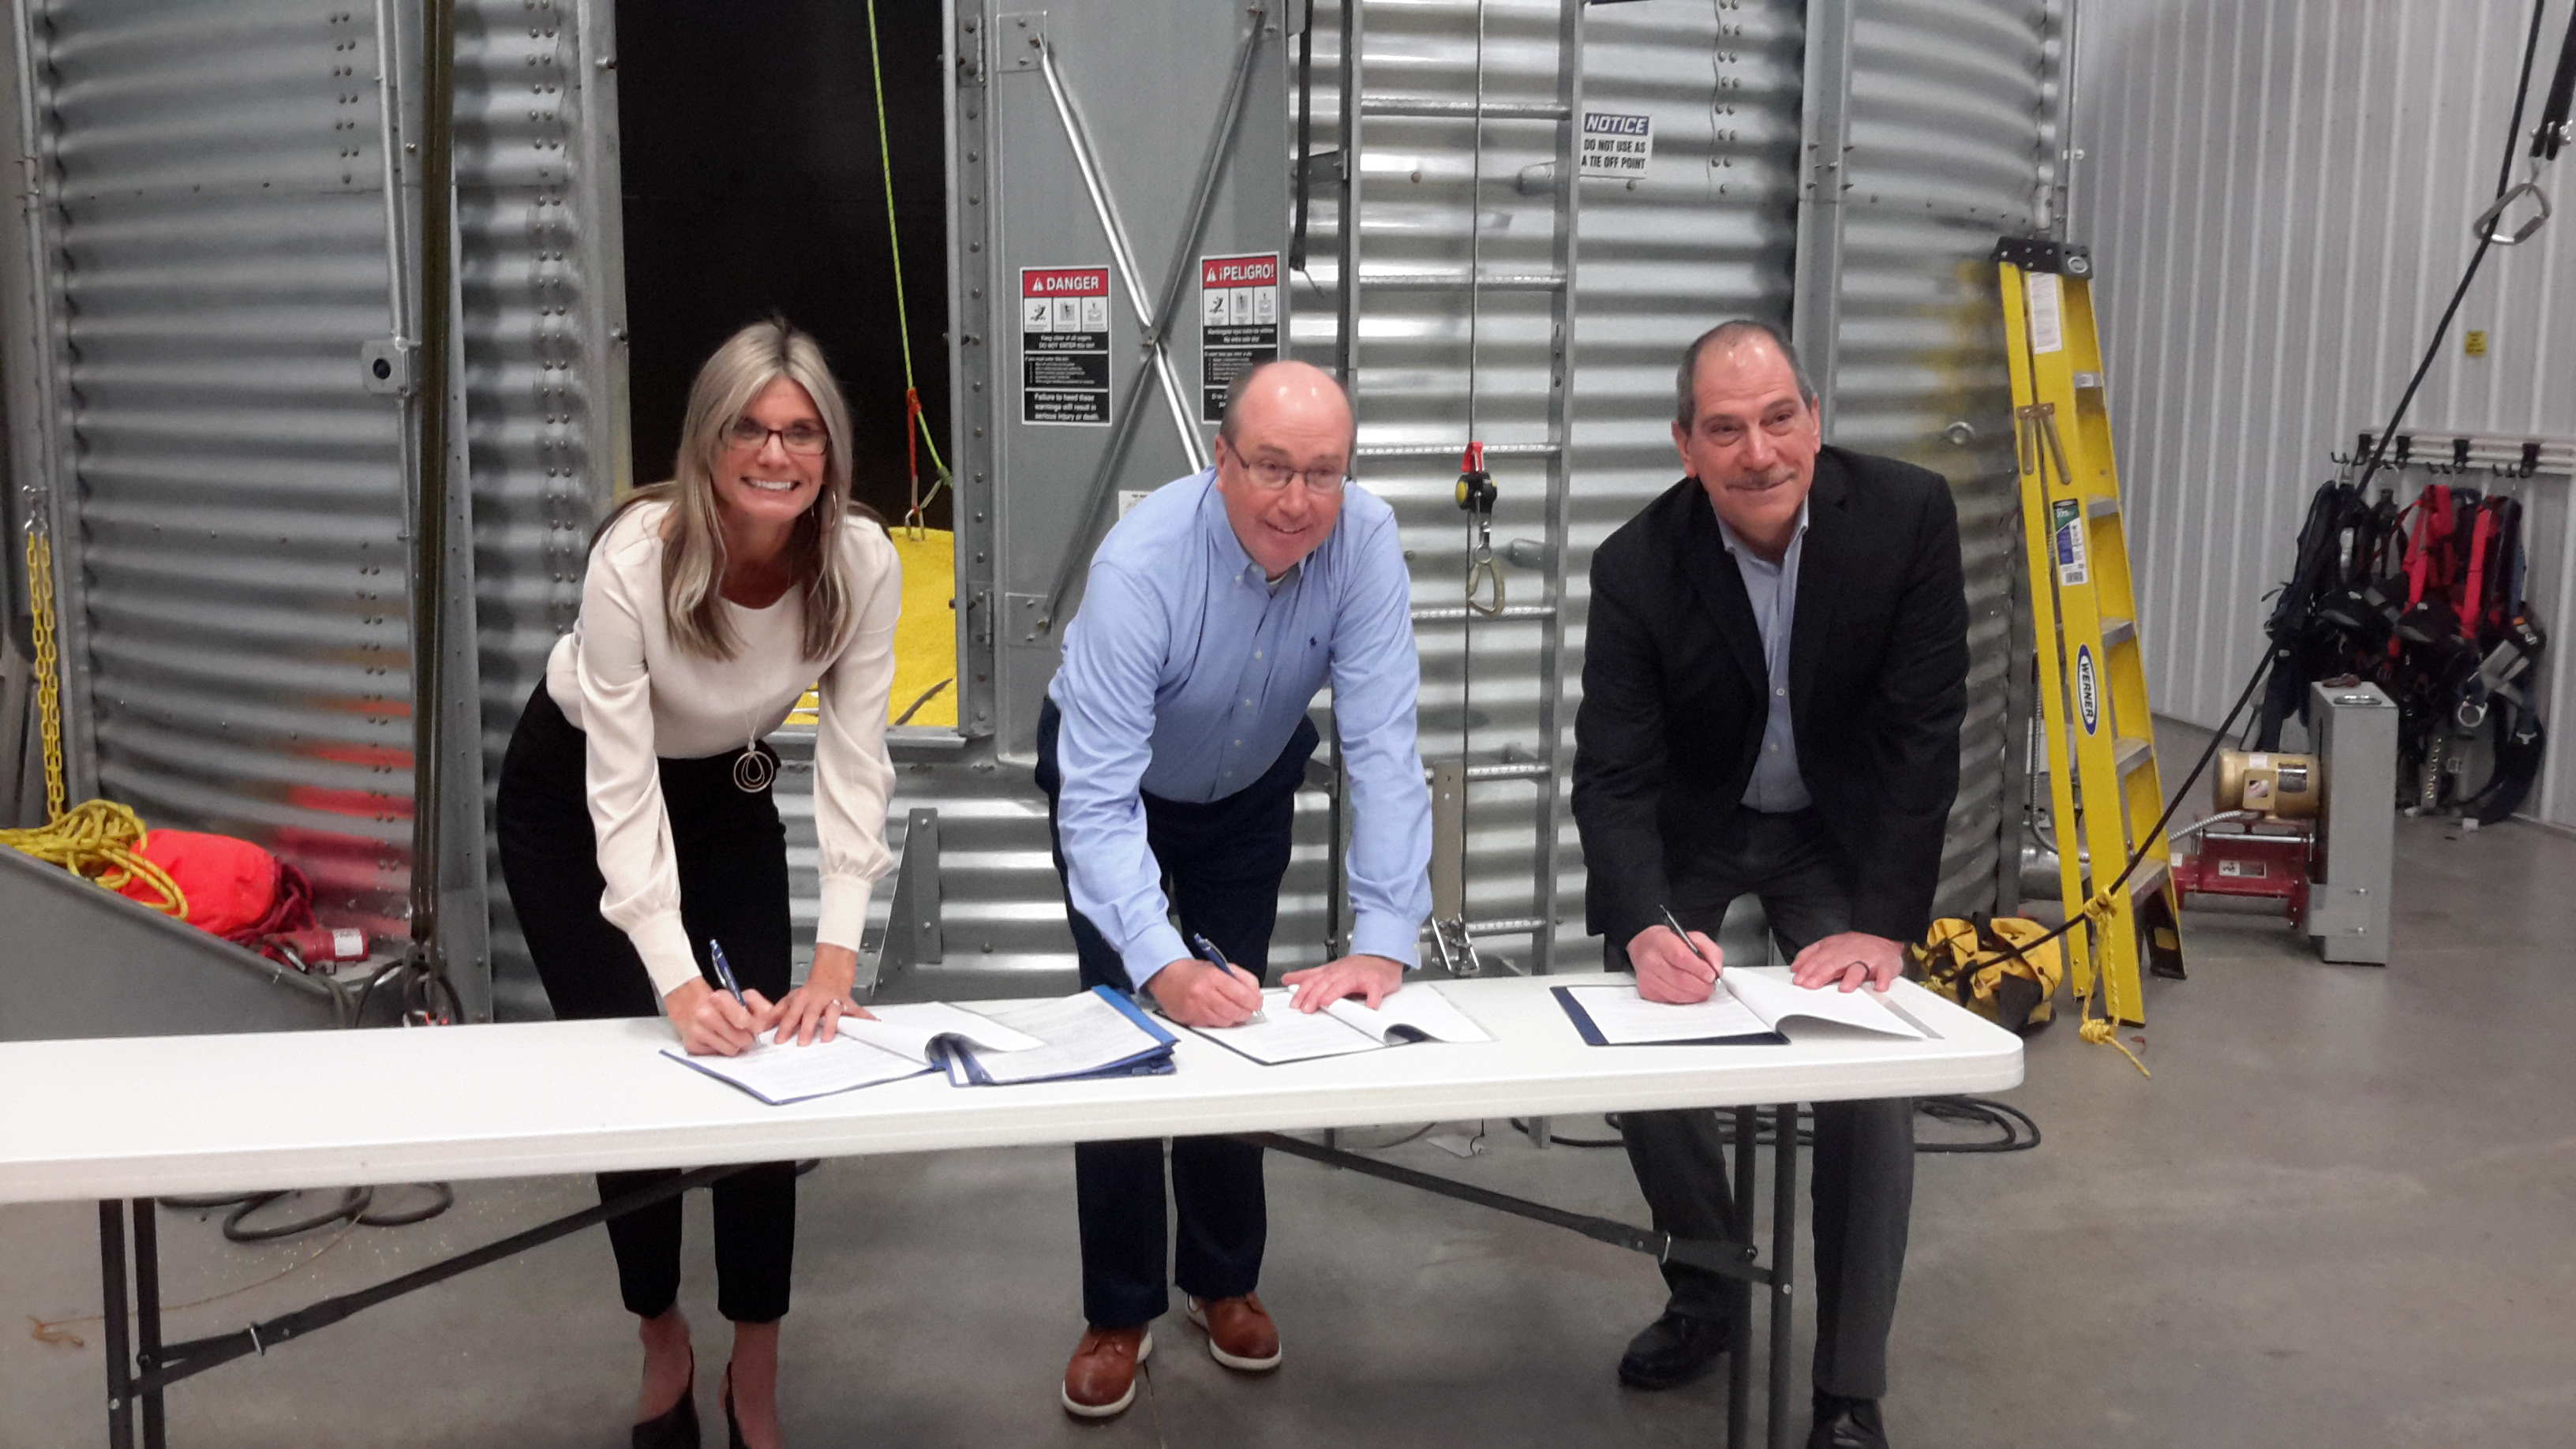 Alliance Signing ceremony on March 10, 2020